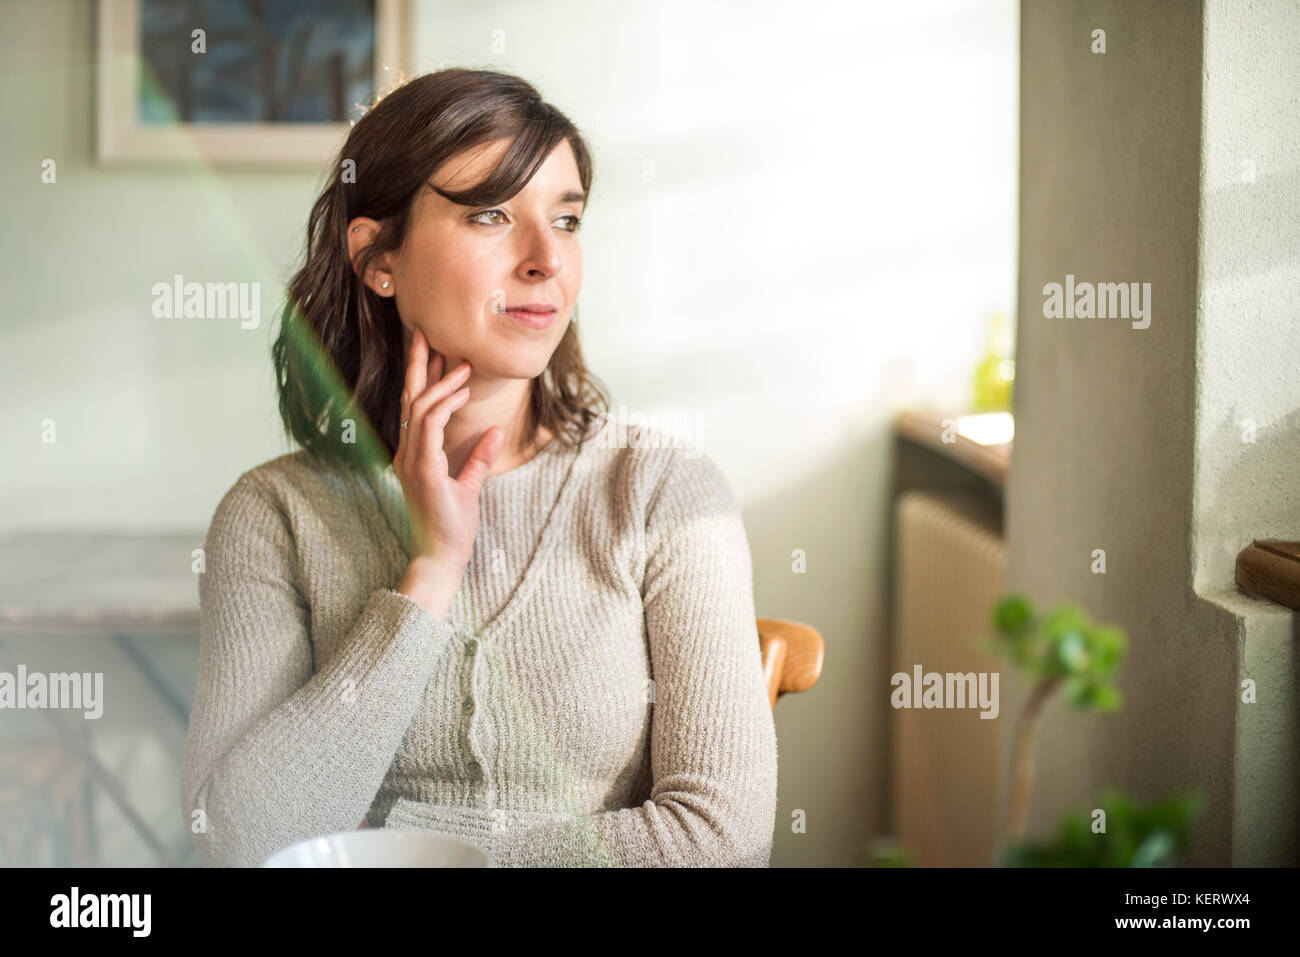 Contemplative Young Adult Woman Looking out Window Stock Photo